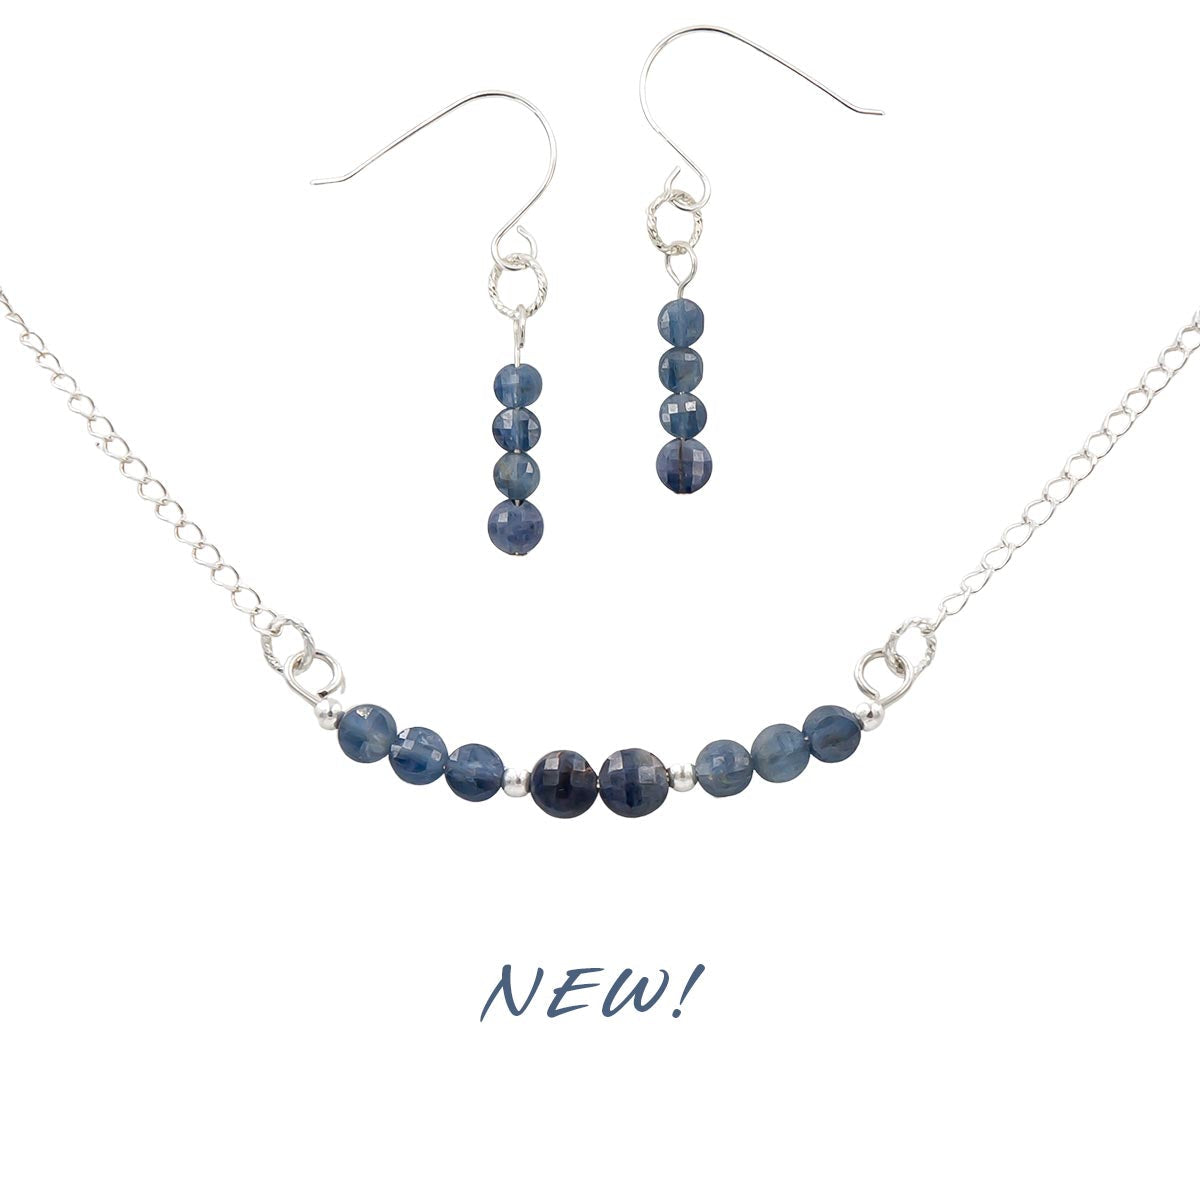 Earth Song Jewelry ~ New For Your Jewelry Box!